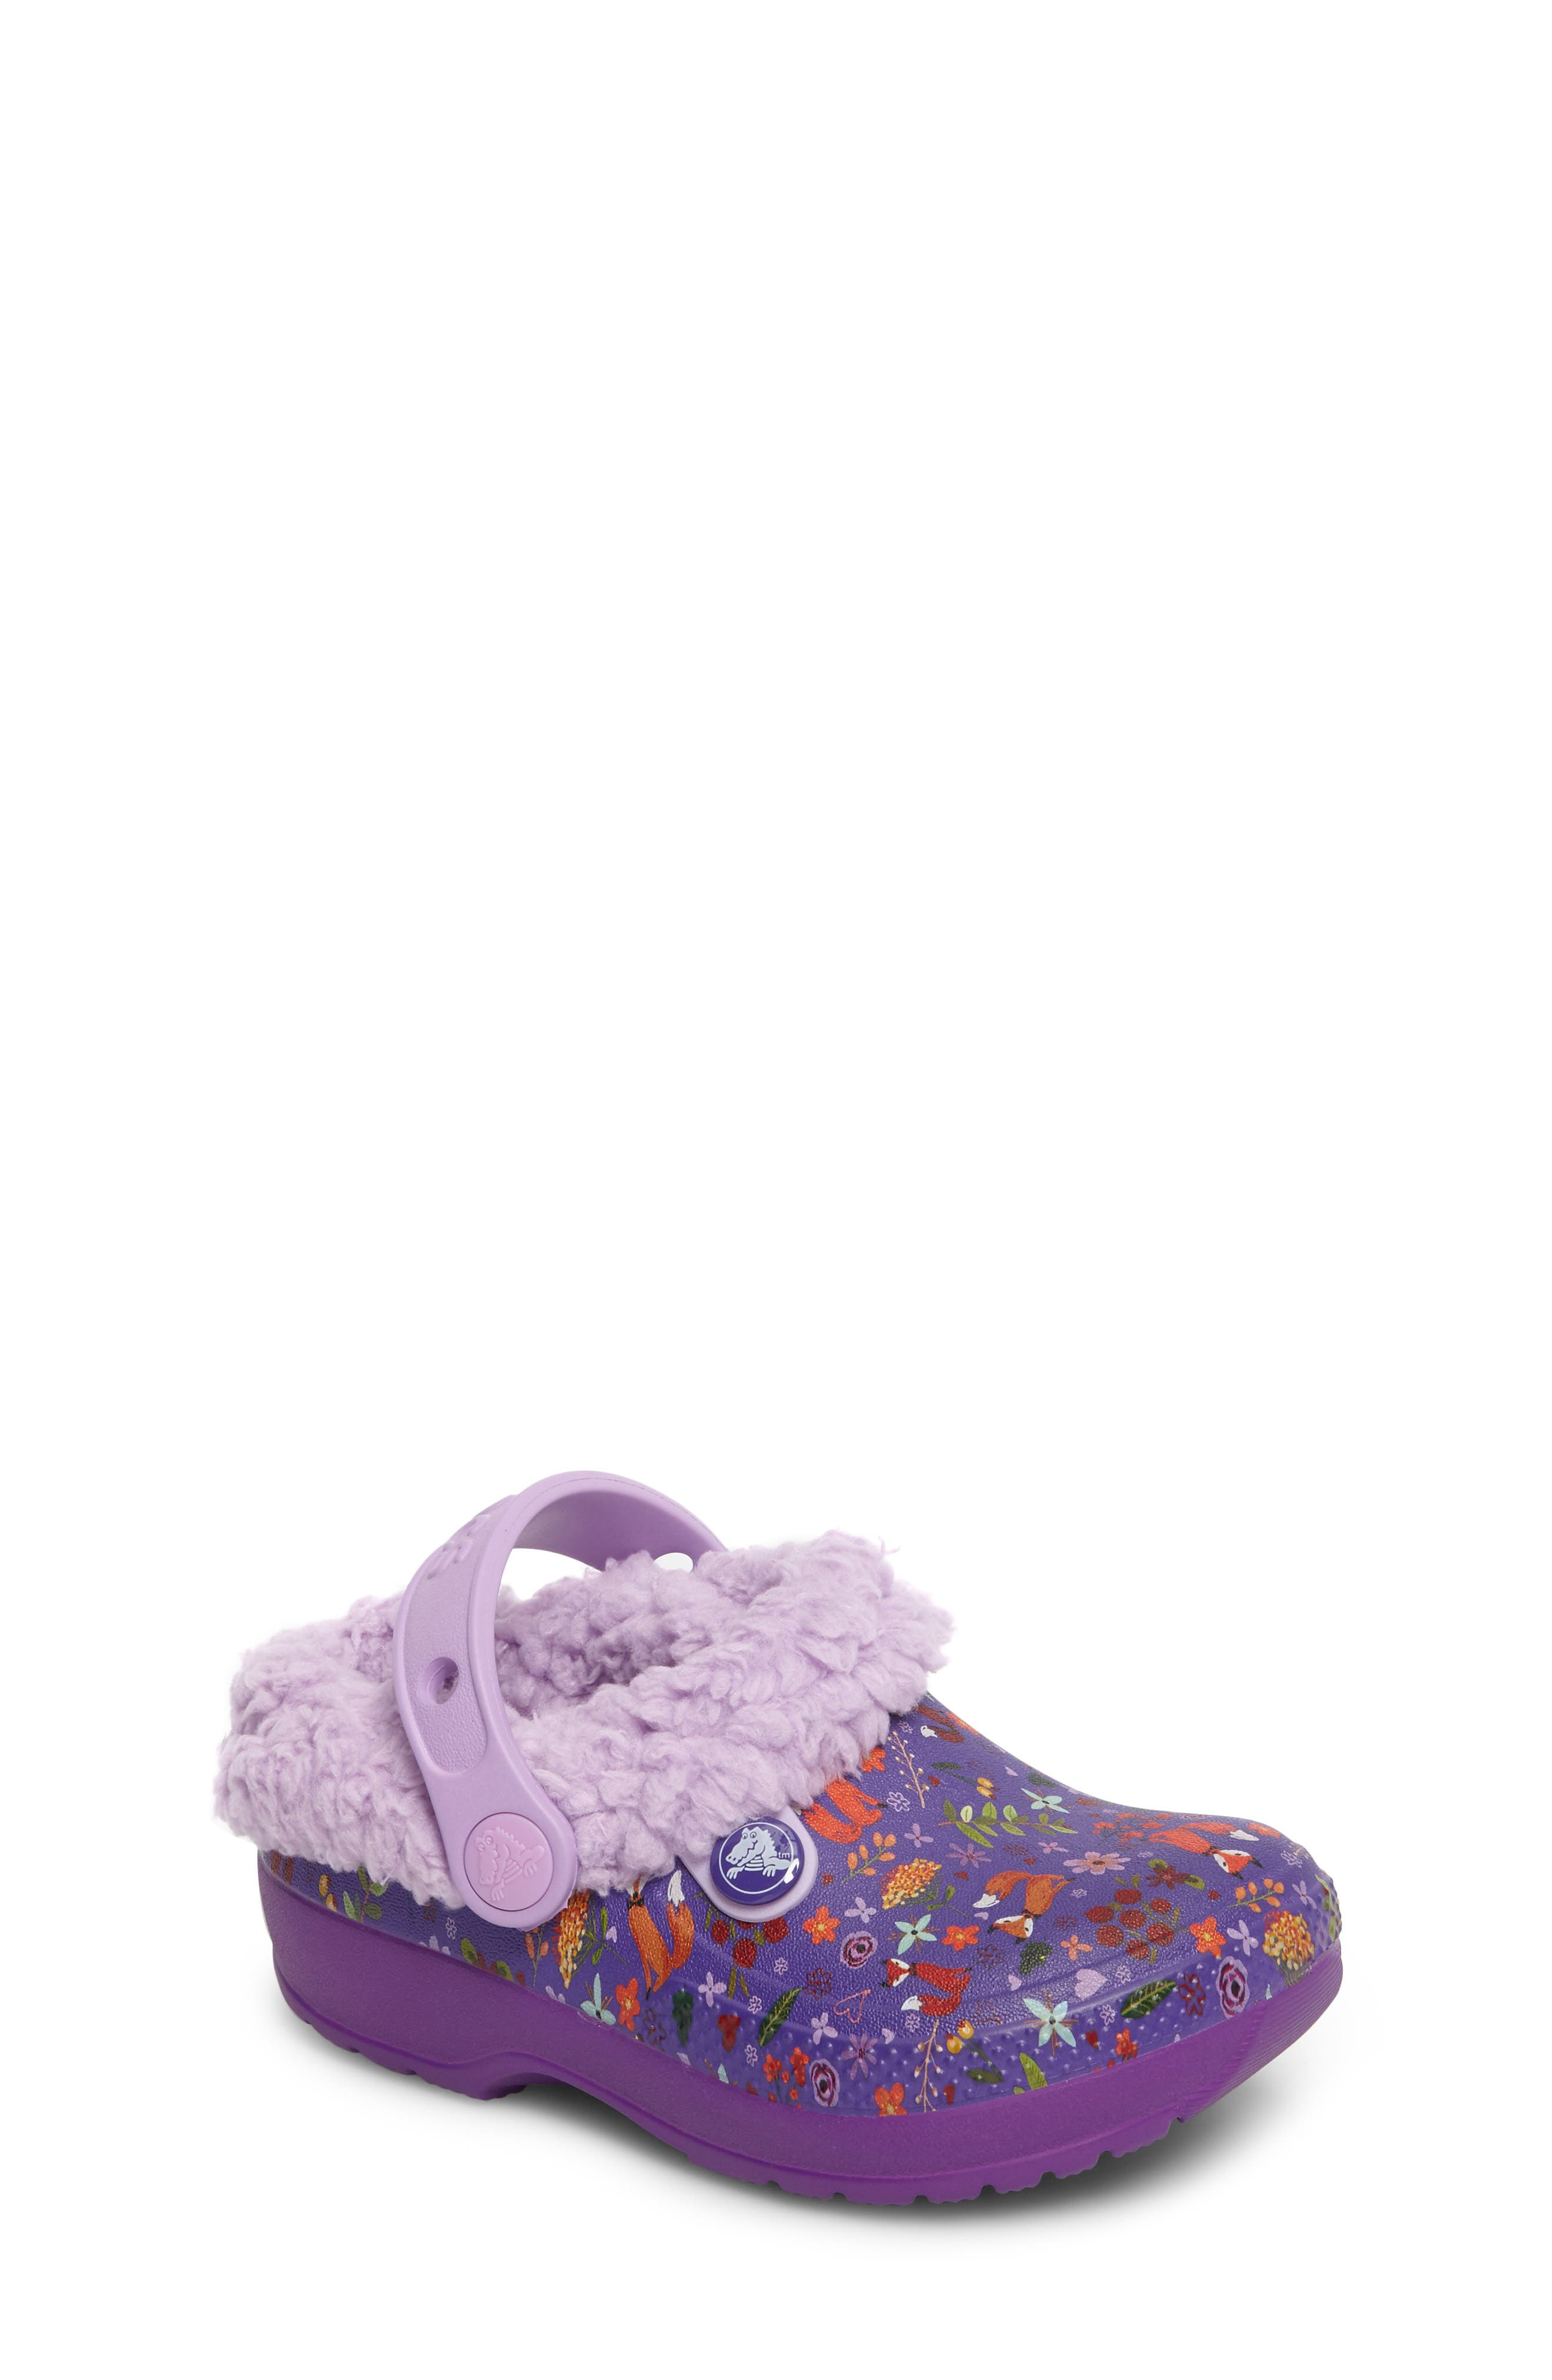 Classic Blitzen III Faux Fur Graphic Clog,                         Main,                         color, 538